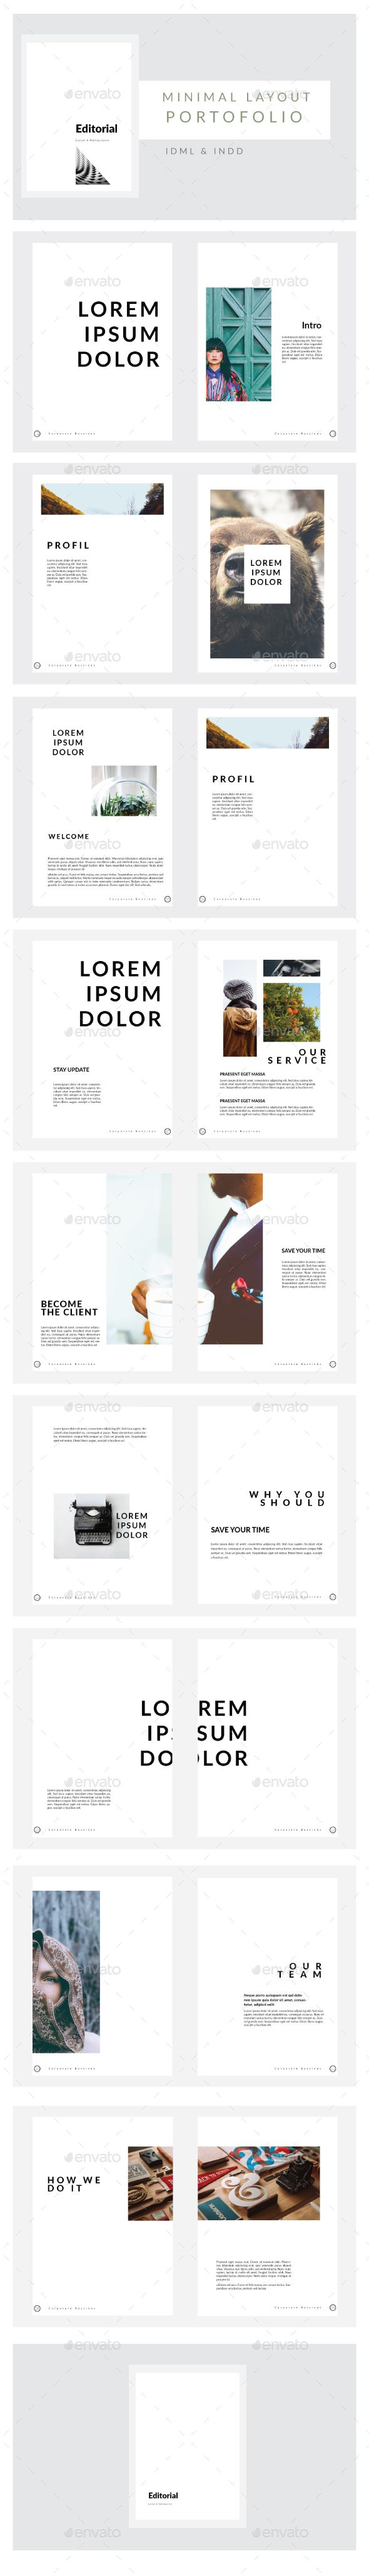 Minimal Portofolio Layout Multipurpose | Layouts, Brochures and Template